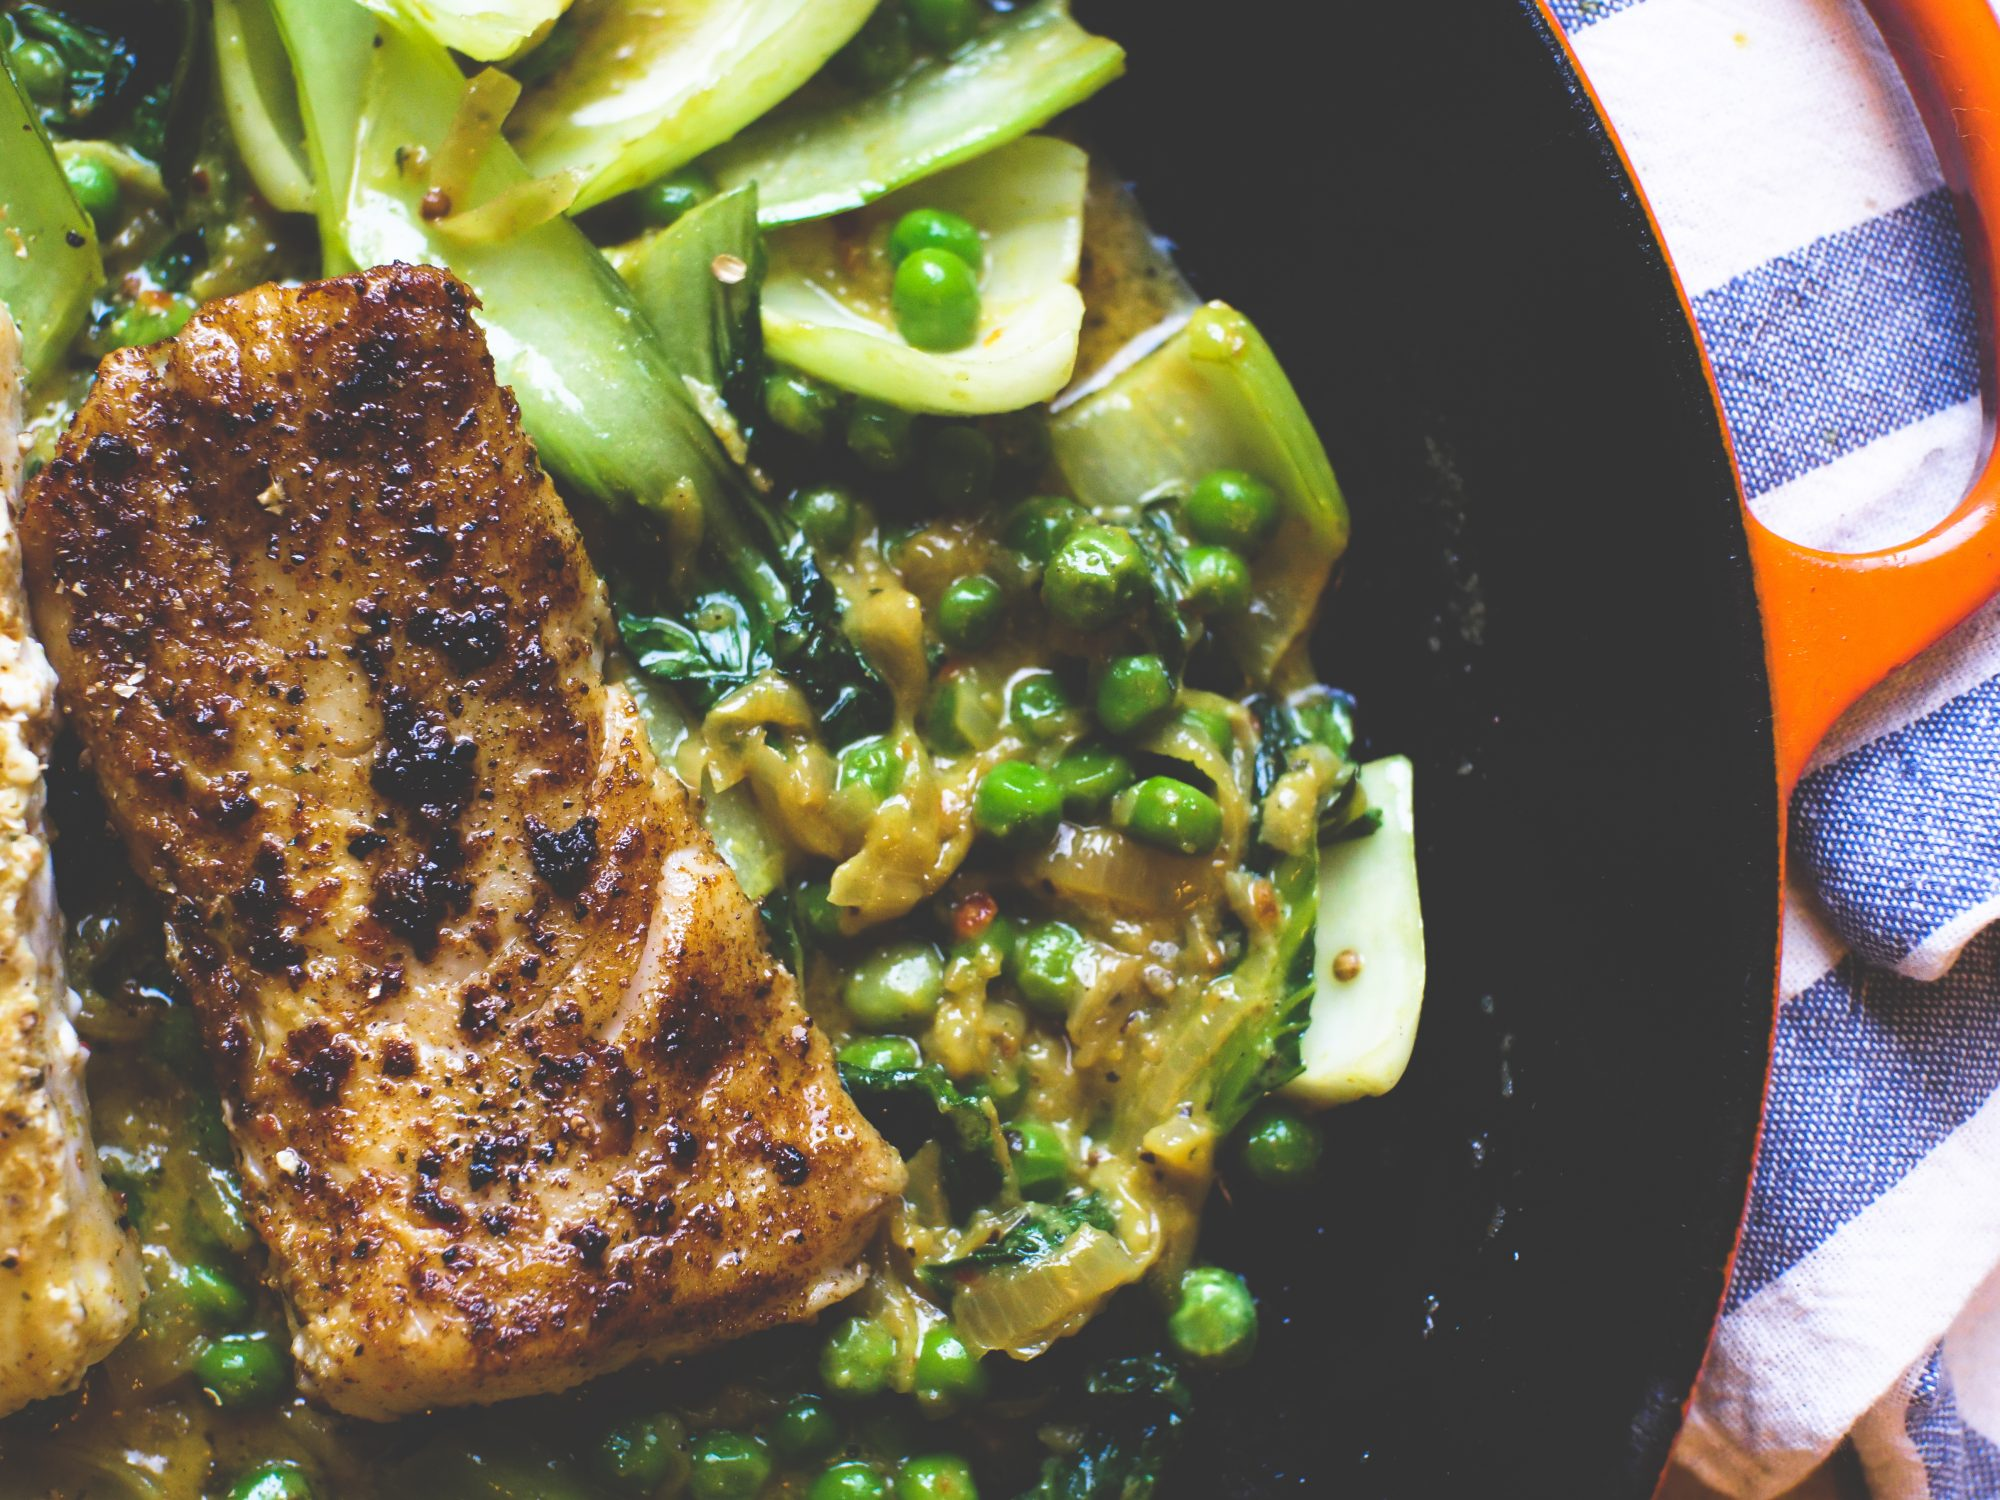 halibut in a creamy turmeric sauce with peas, bok choi, and caramelized onions